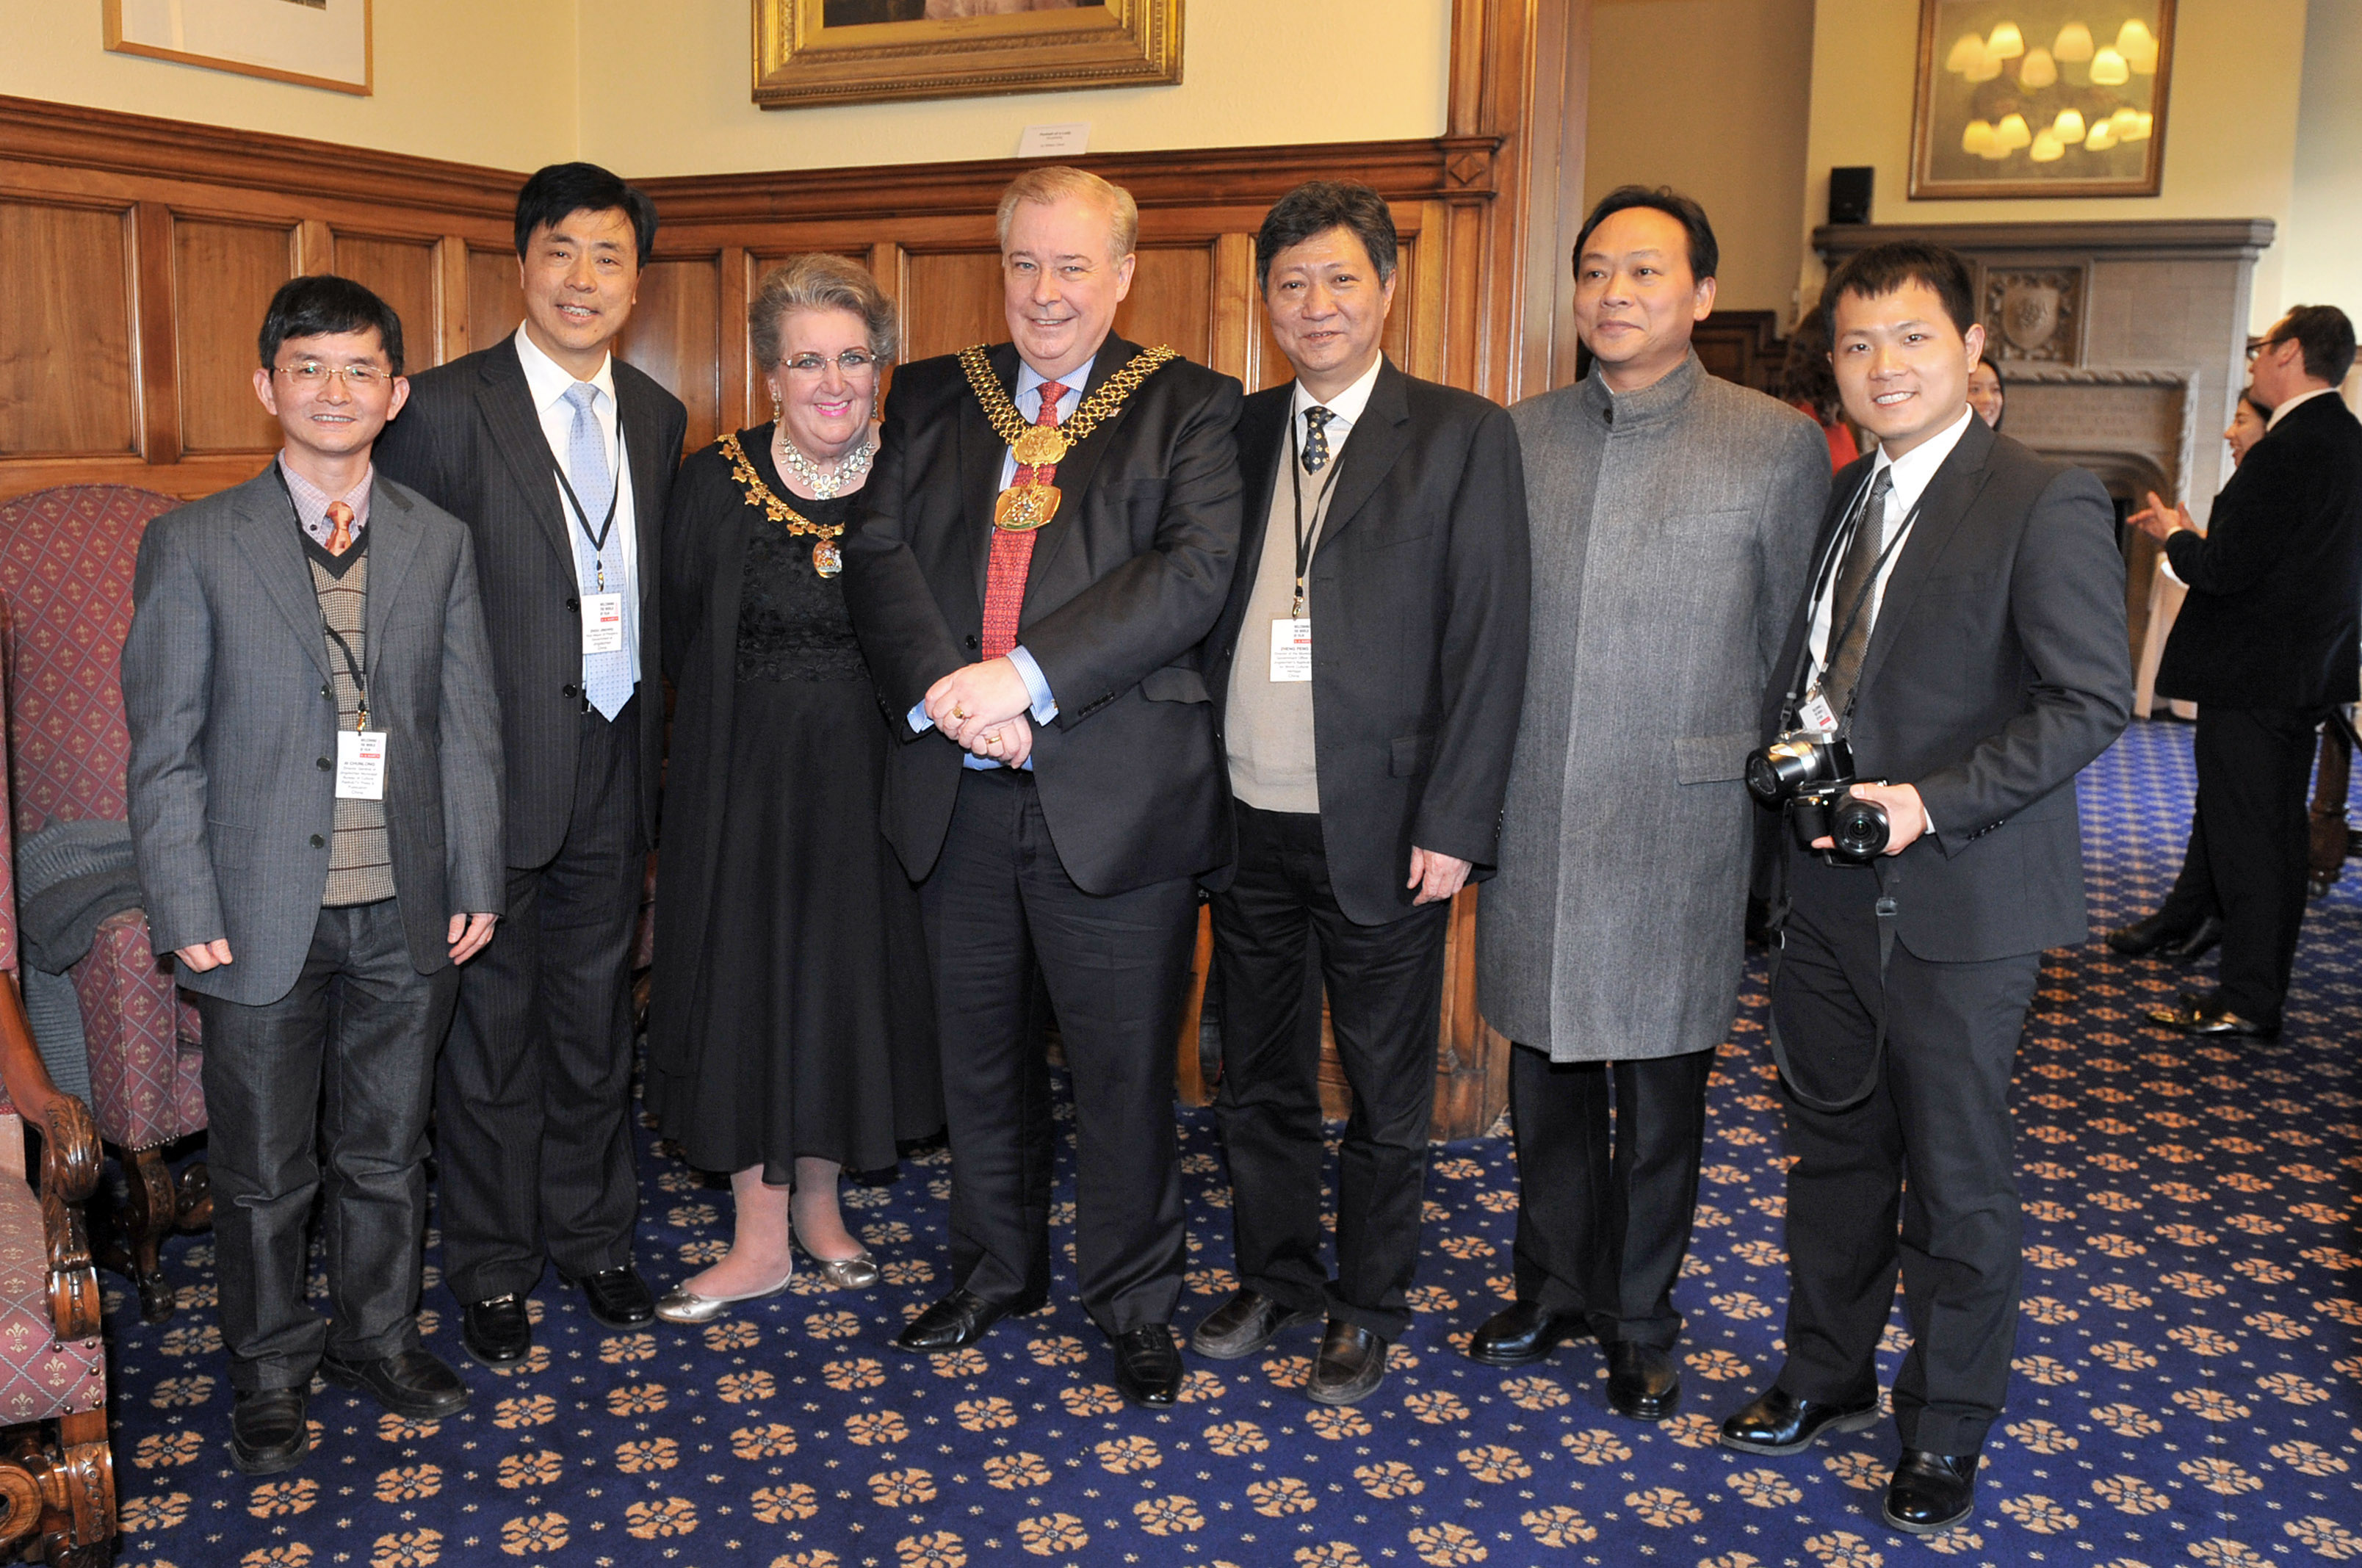 Official Opening of Bradford International Film Summit 201504.03.15